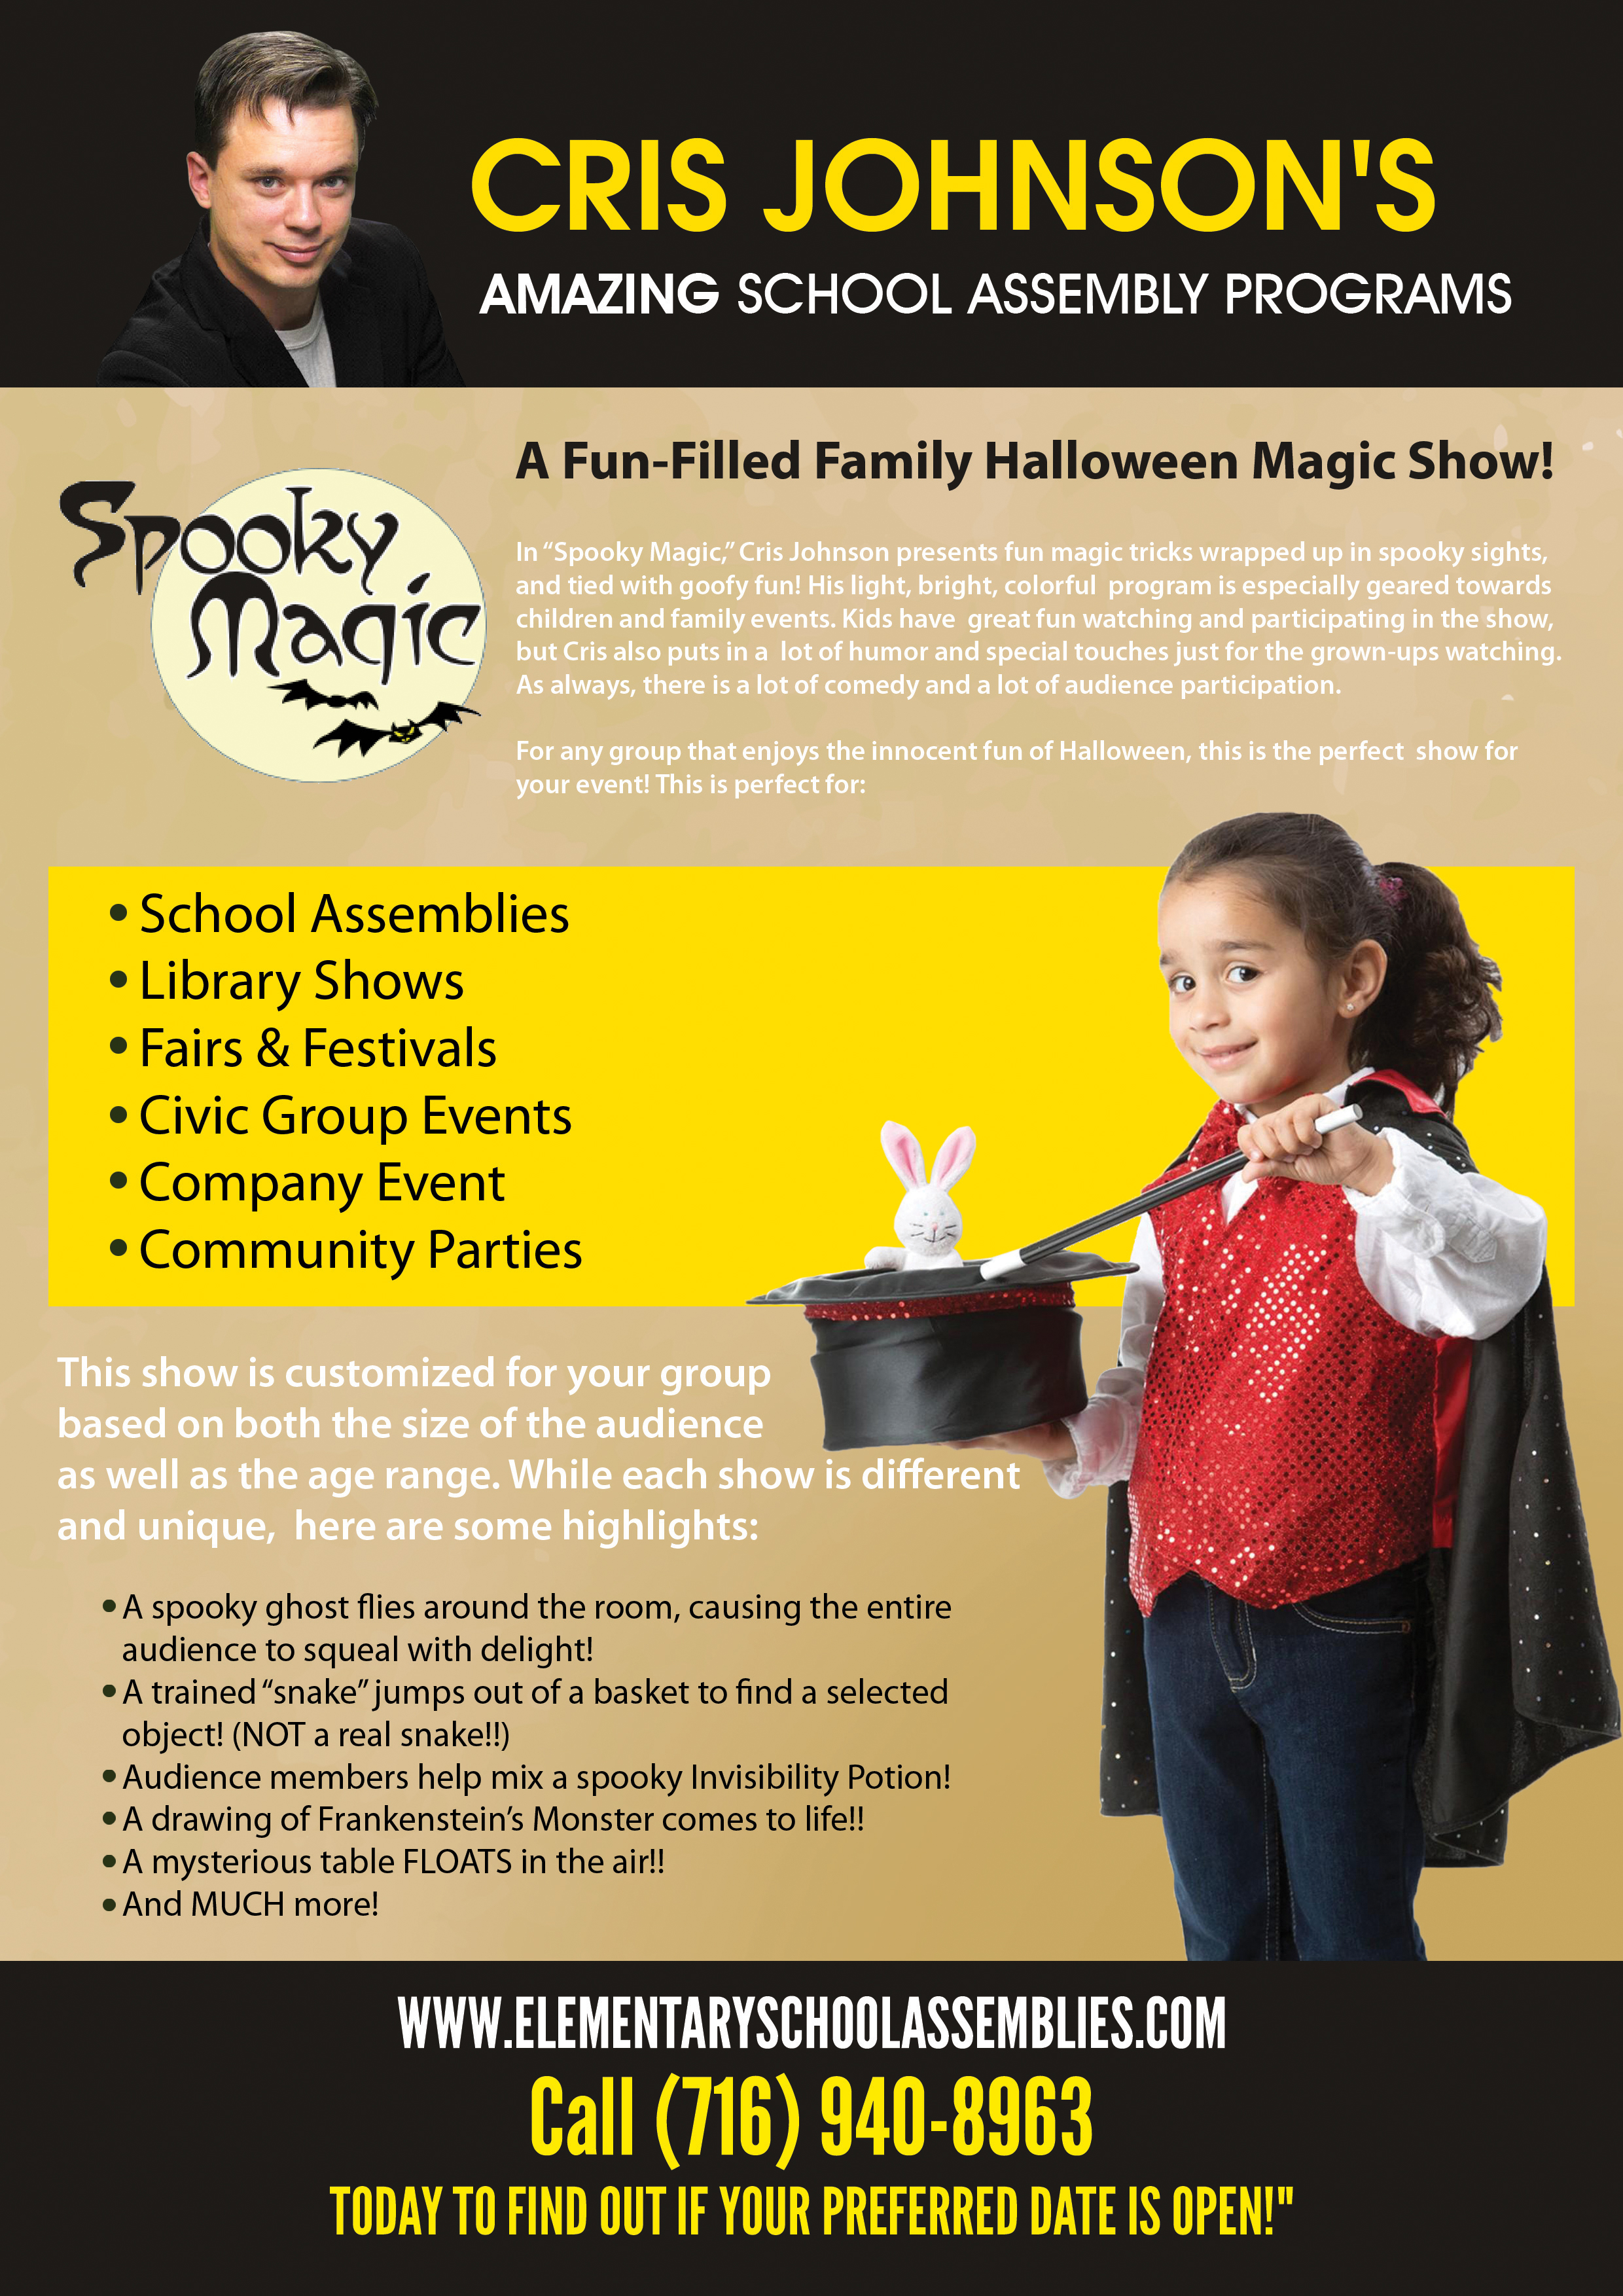 Halloween Magic Show - Amazing School Assembly Programs